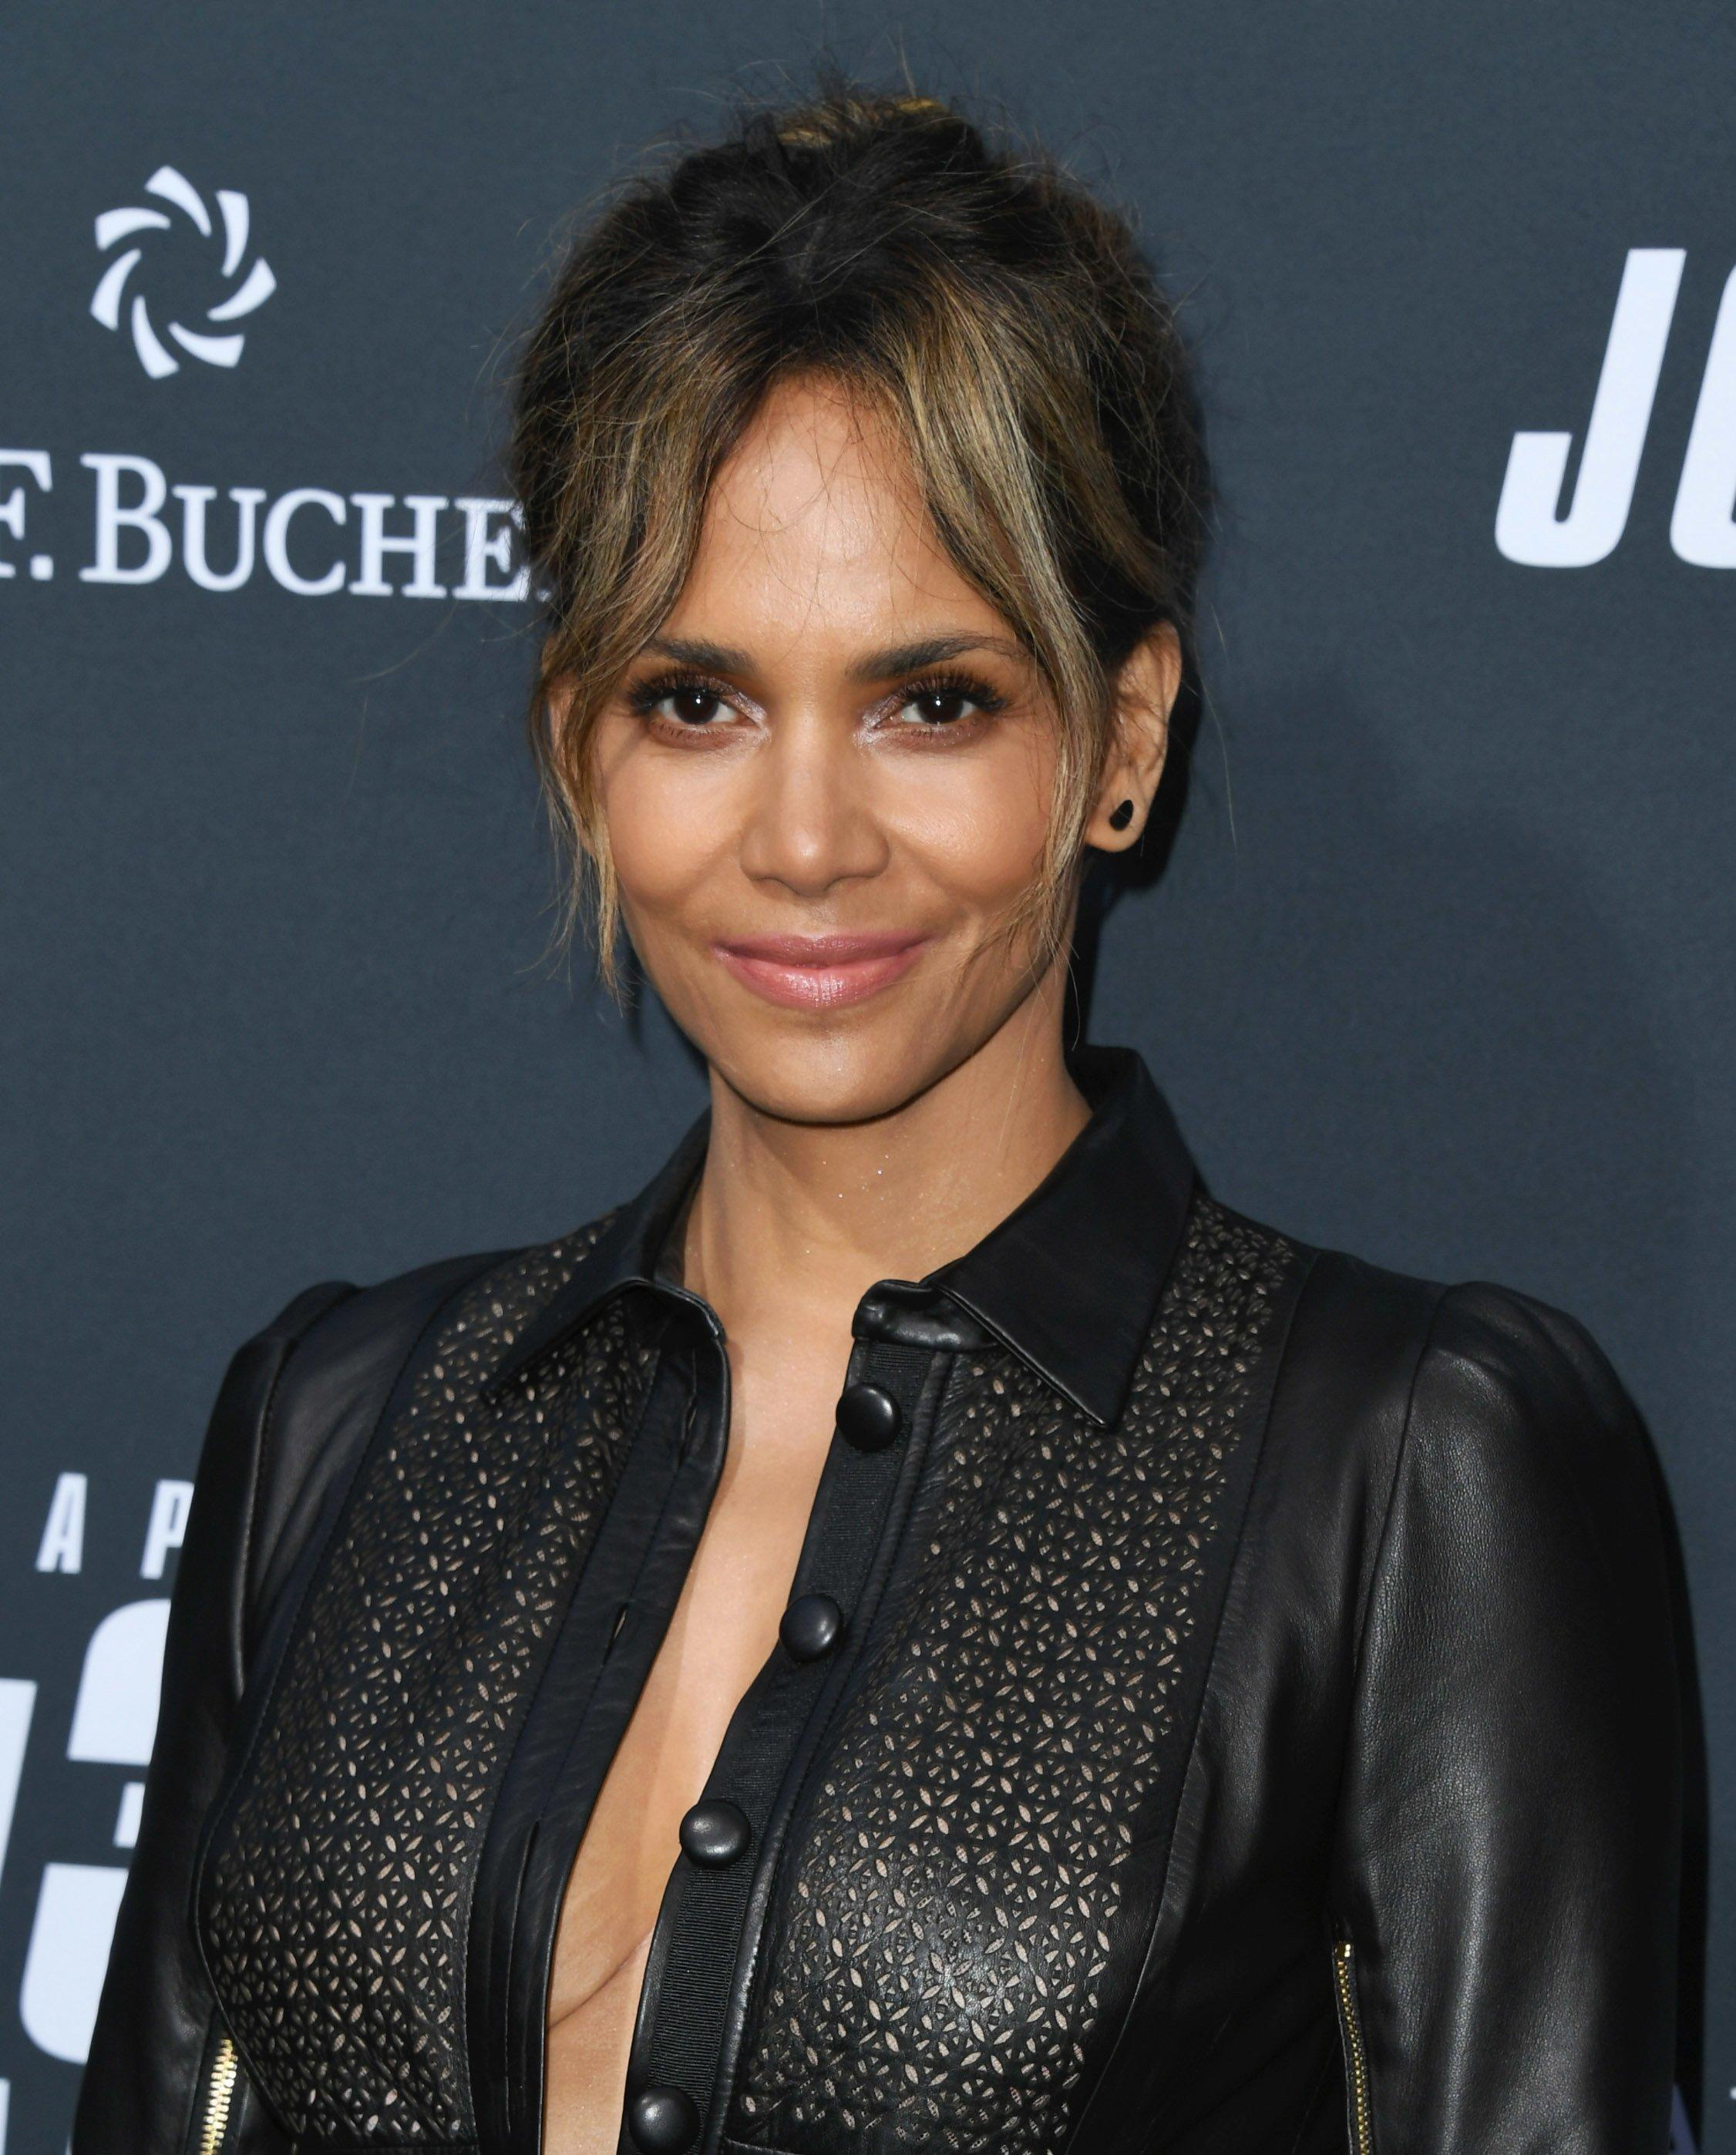 halle berry made a catwoman callback in a sheer leather romper